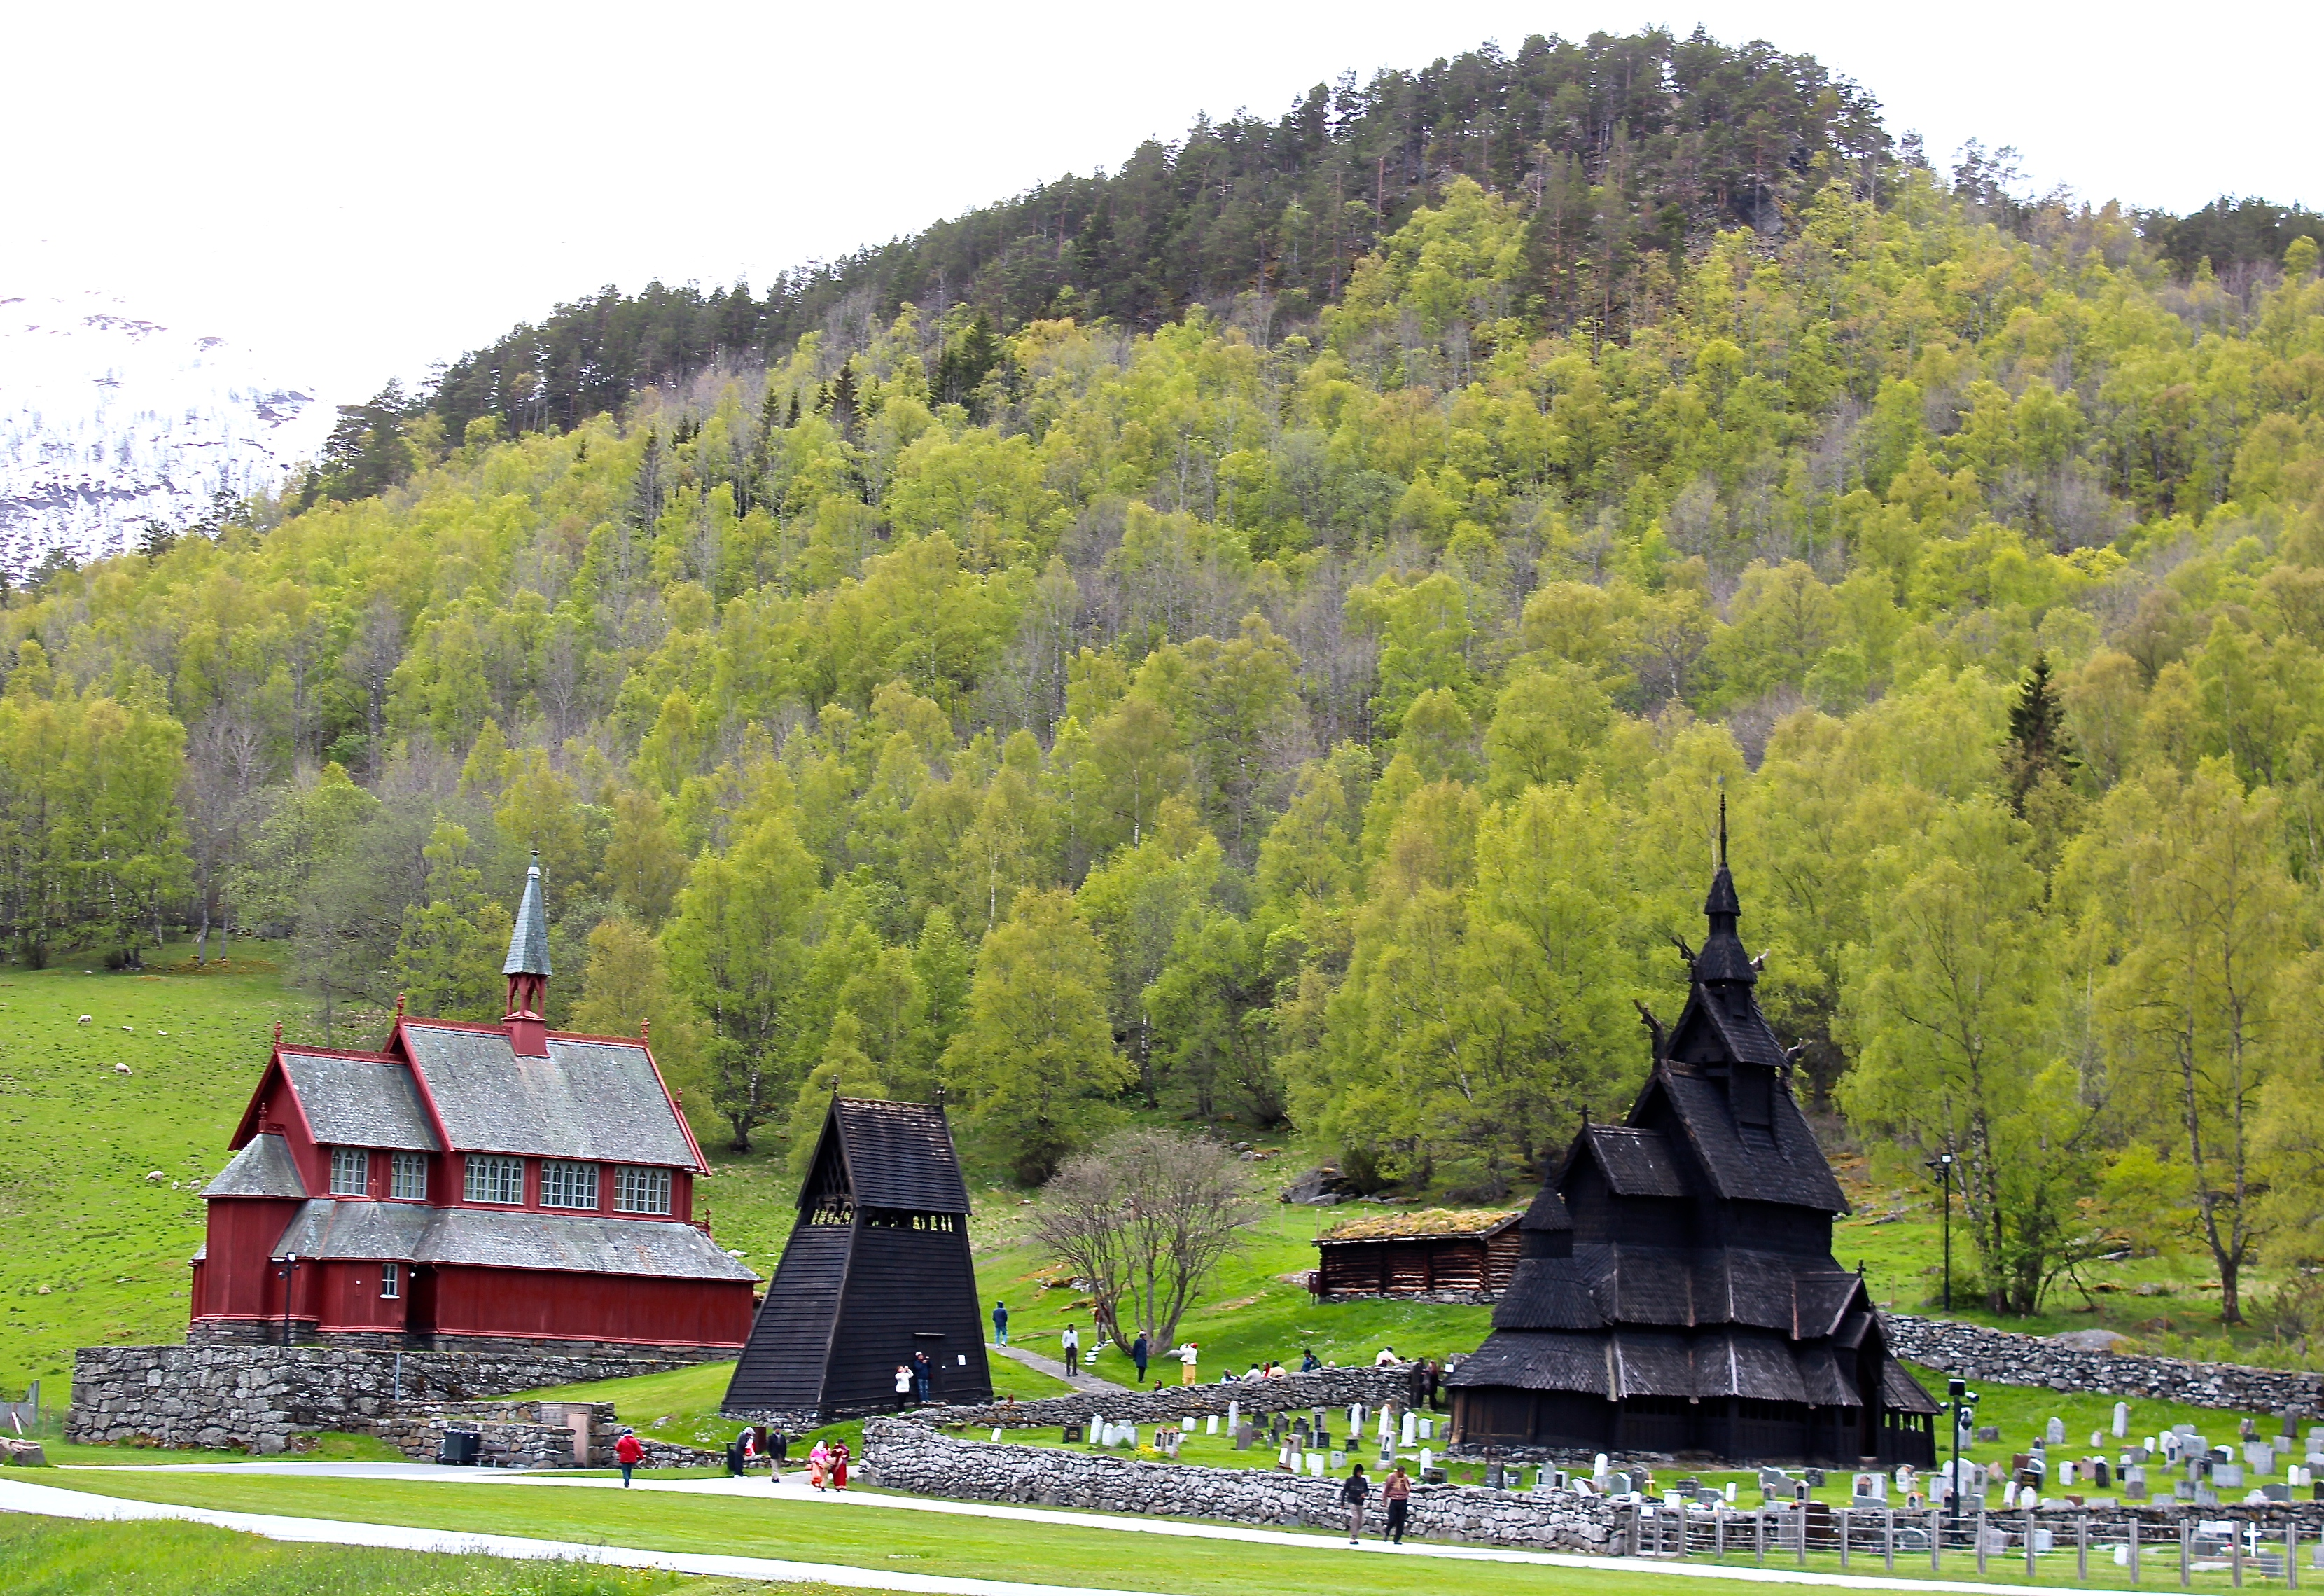 The Modern Church (1868) Sits On The Left, The Medieval Bell Tower Is The  Triangular Structure In The Center, And The Borgund Stave Church Is On The  Right.